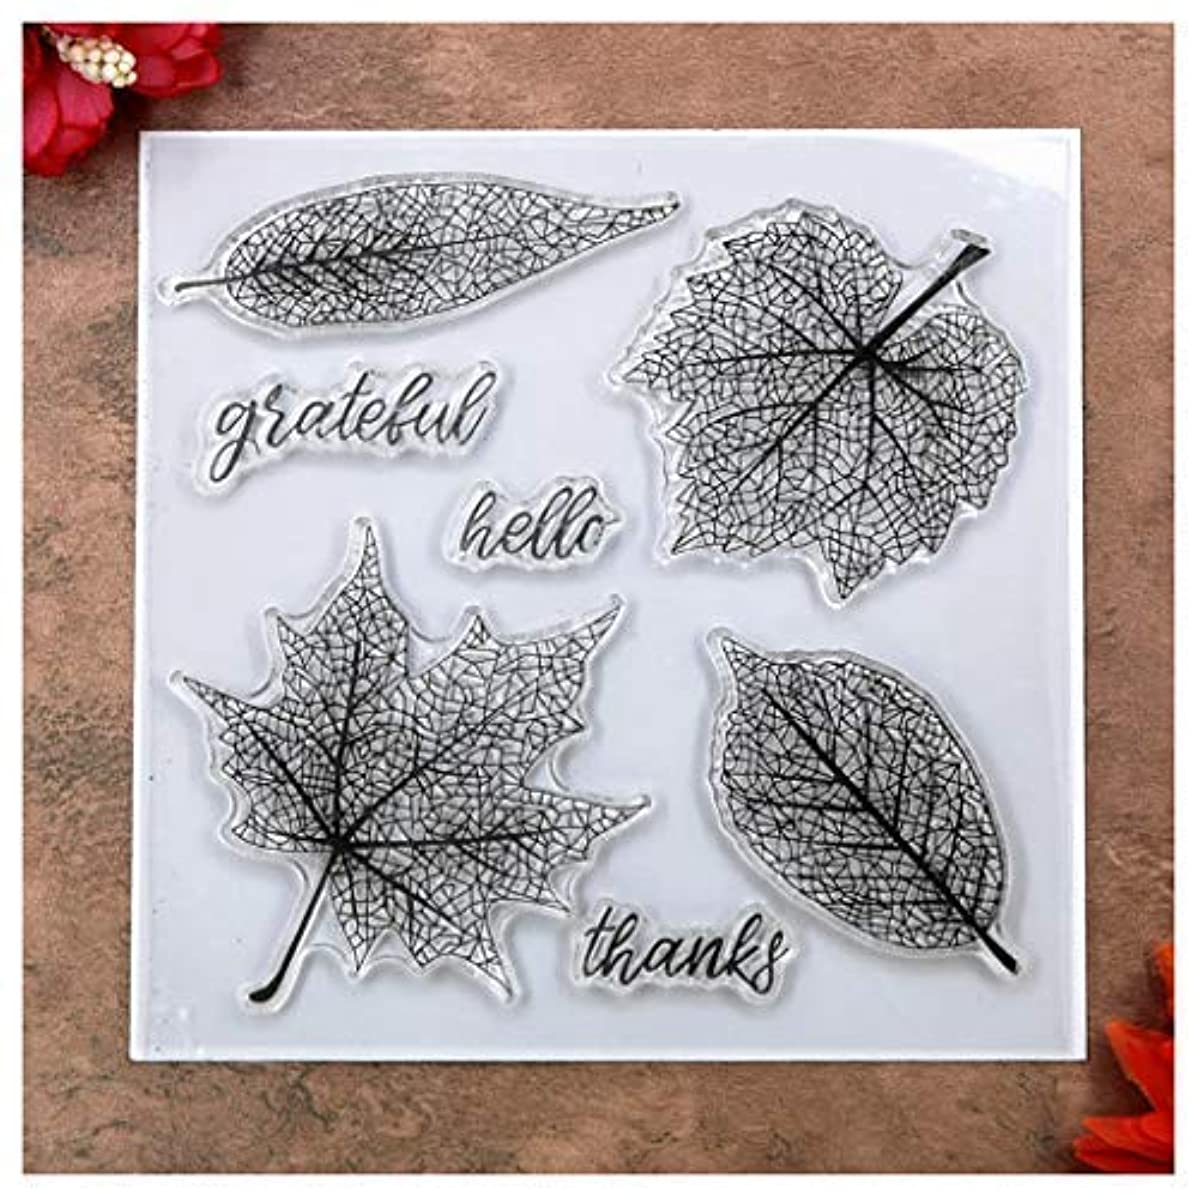 Kwan Crafts Leaves Hello Thanks Grateful Clear Stamps for Card Making Decoration and DIY Scrapbooking